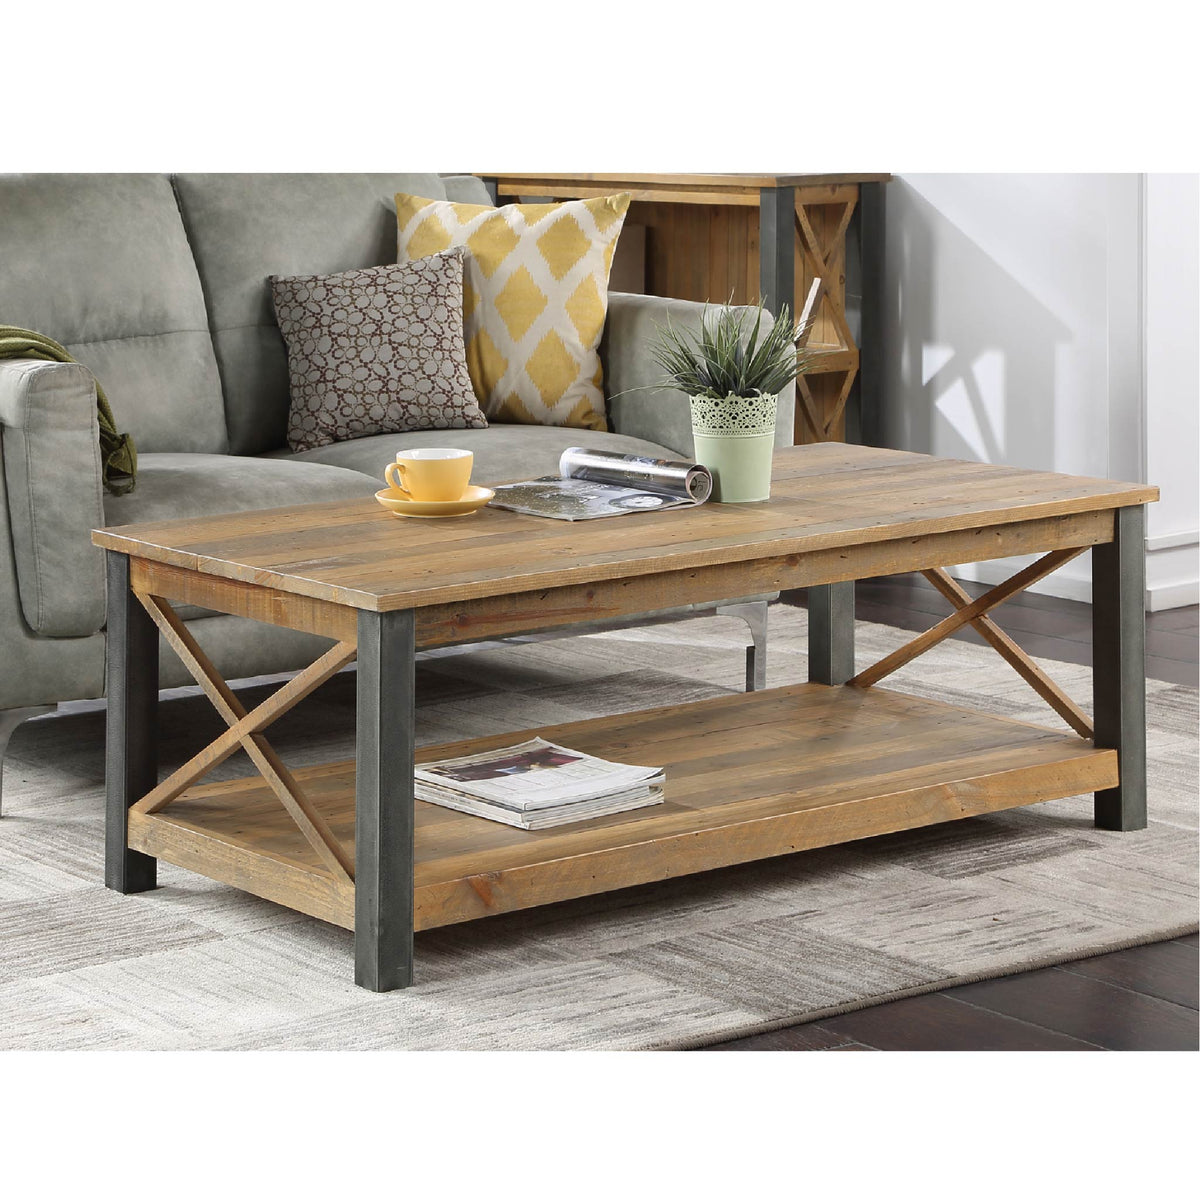 Urban Elegance Reclaimed Wood Extra Large Coffee Table